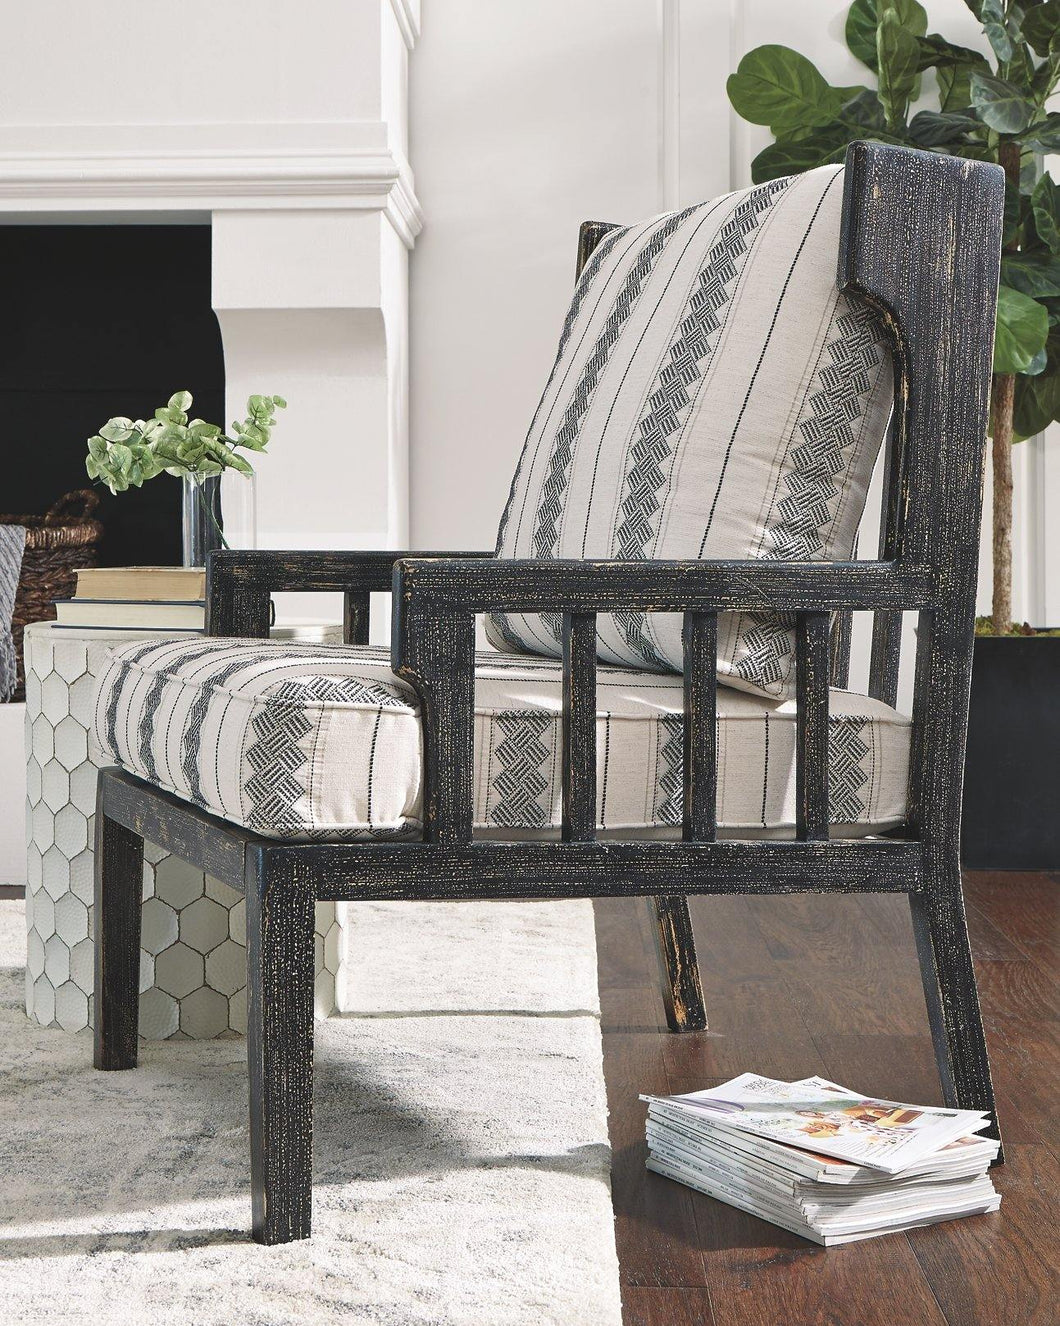 Kelanie Accent Chair A3000209 By Ashley Furniture from sofafair